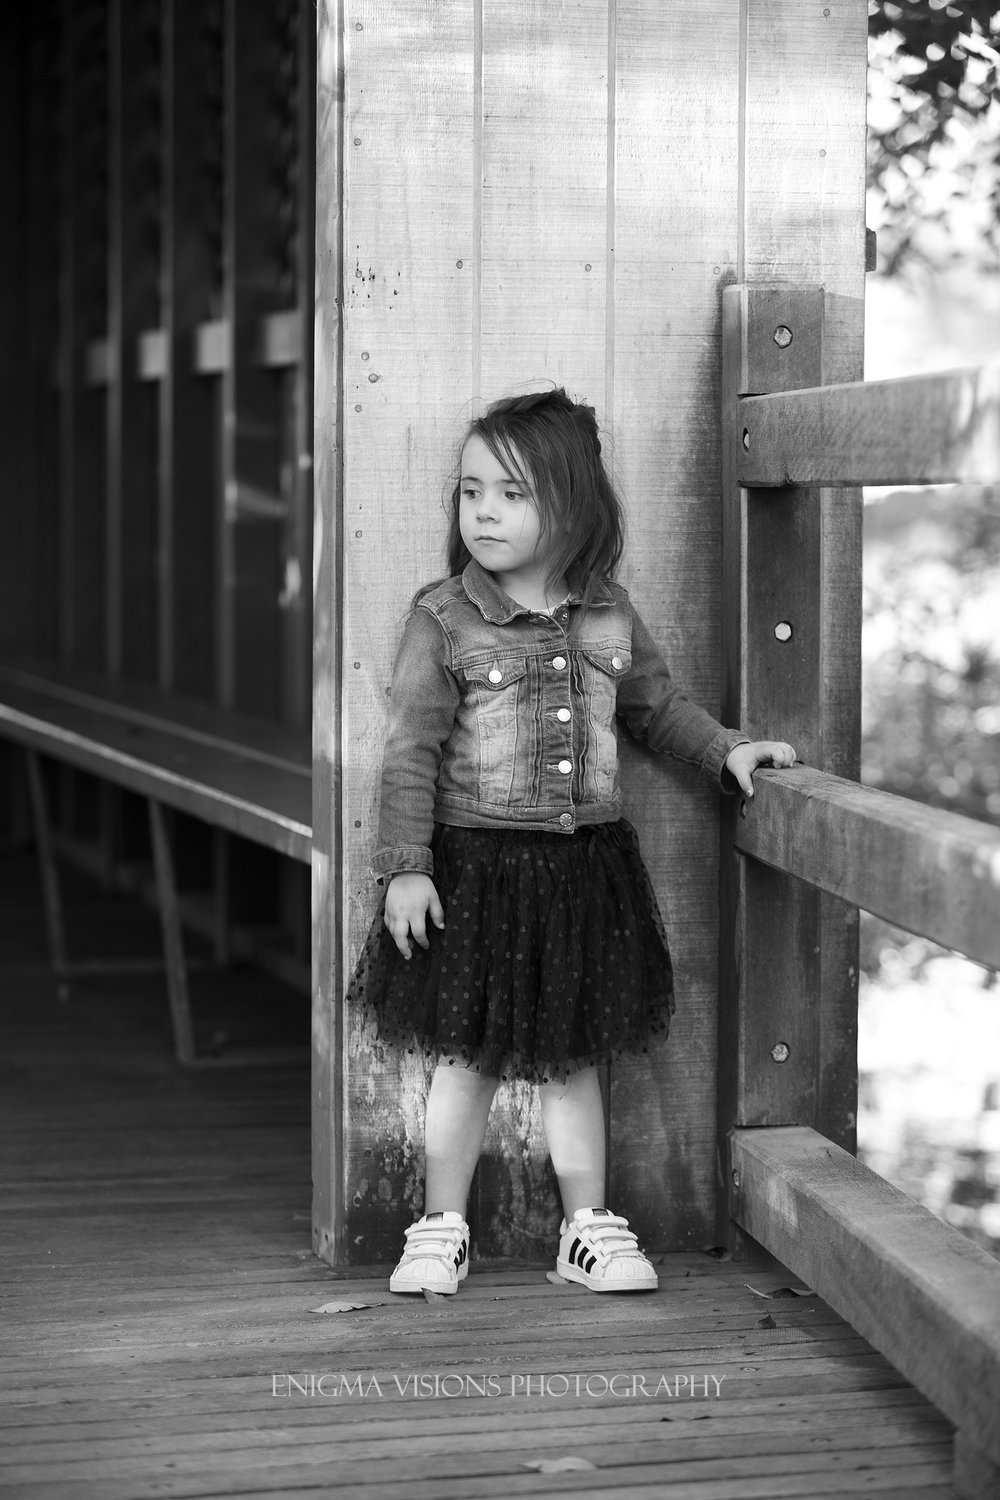 enigma_visions_photography_family_boondall (13).jpg